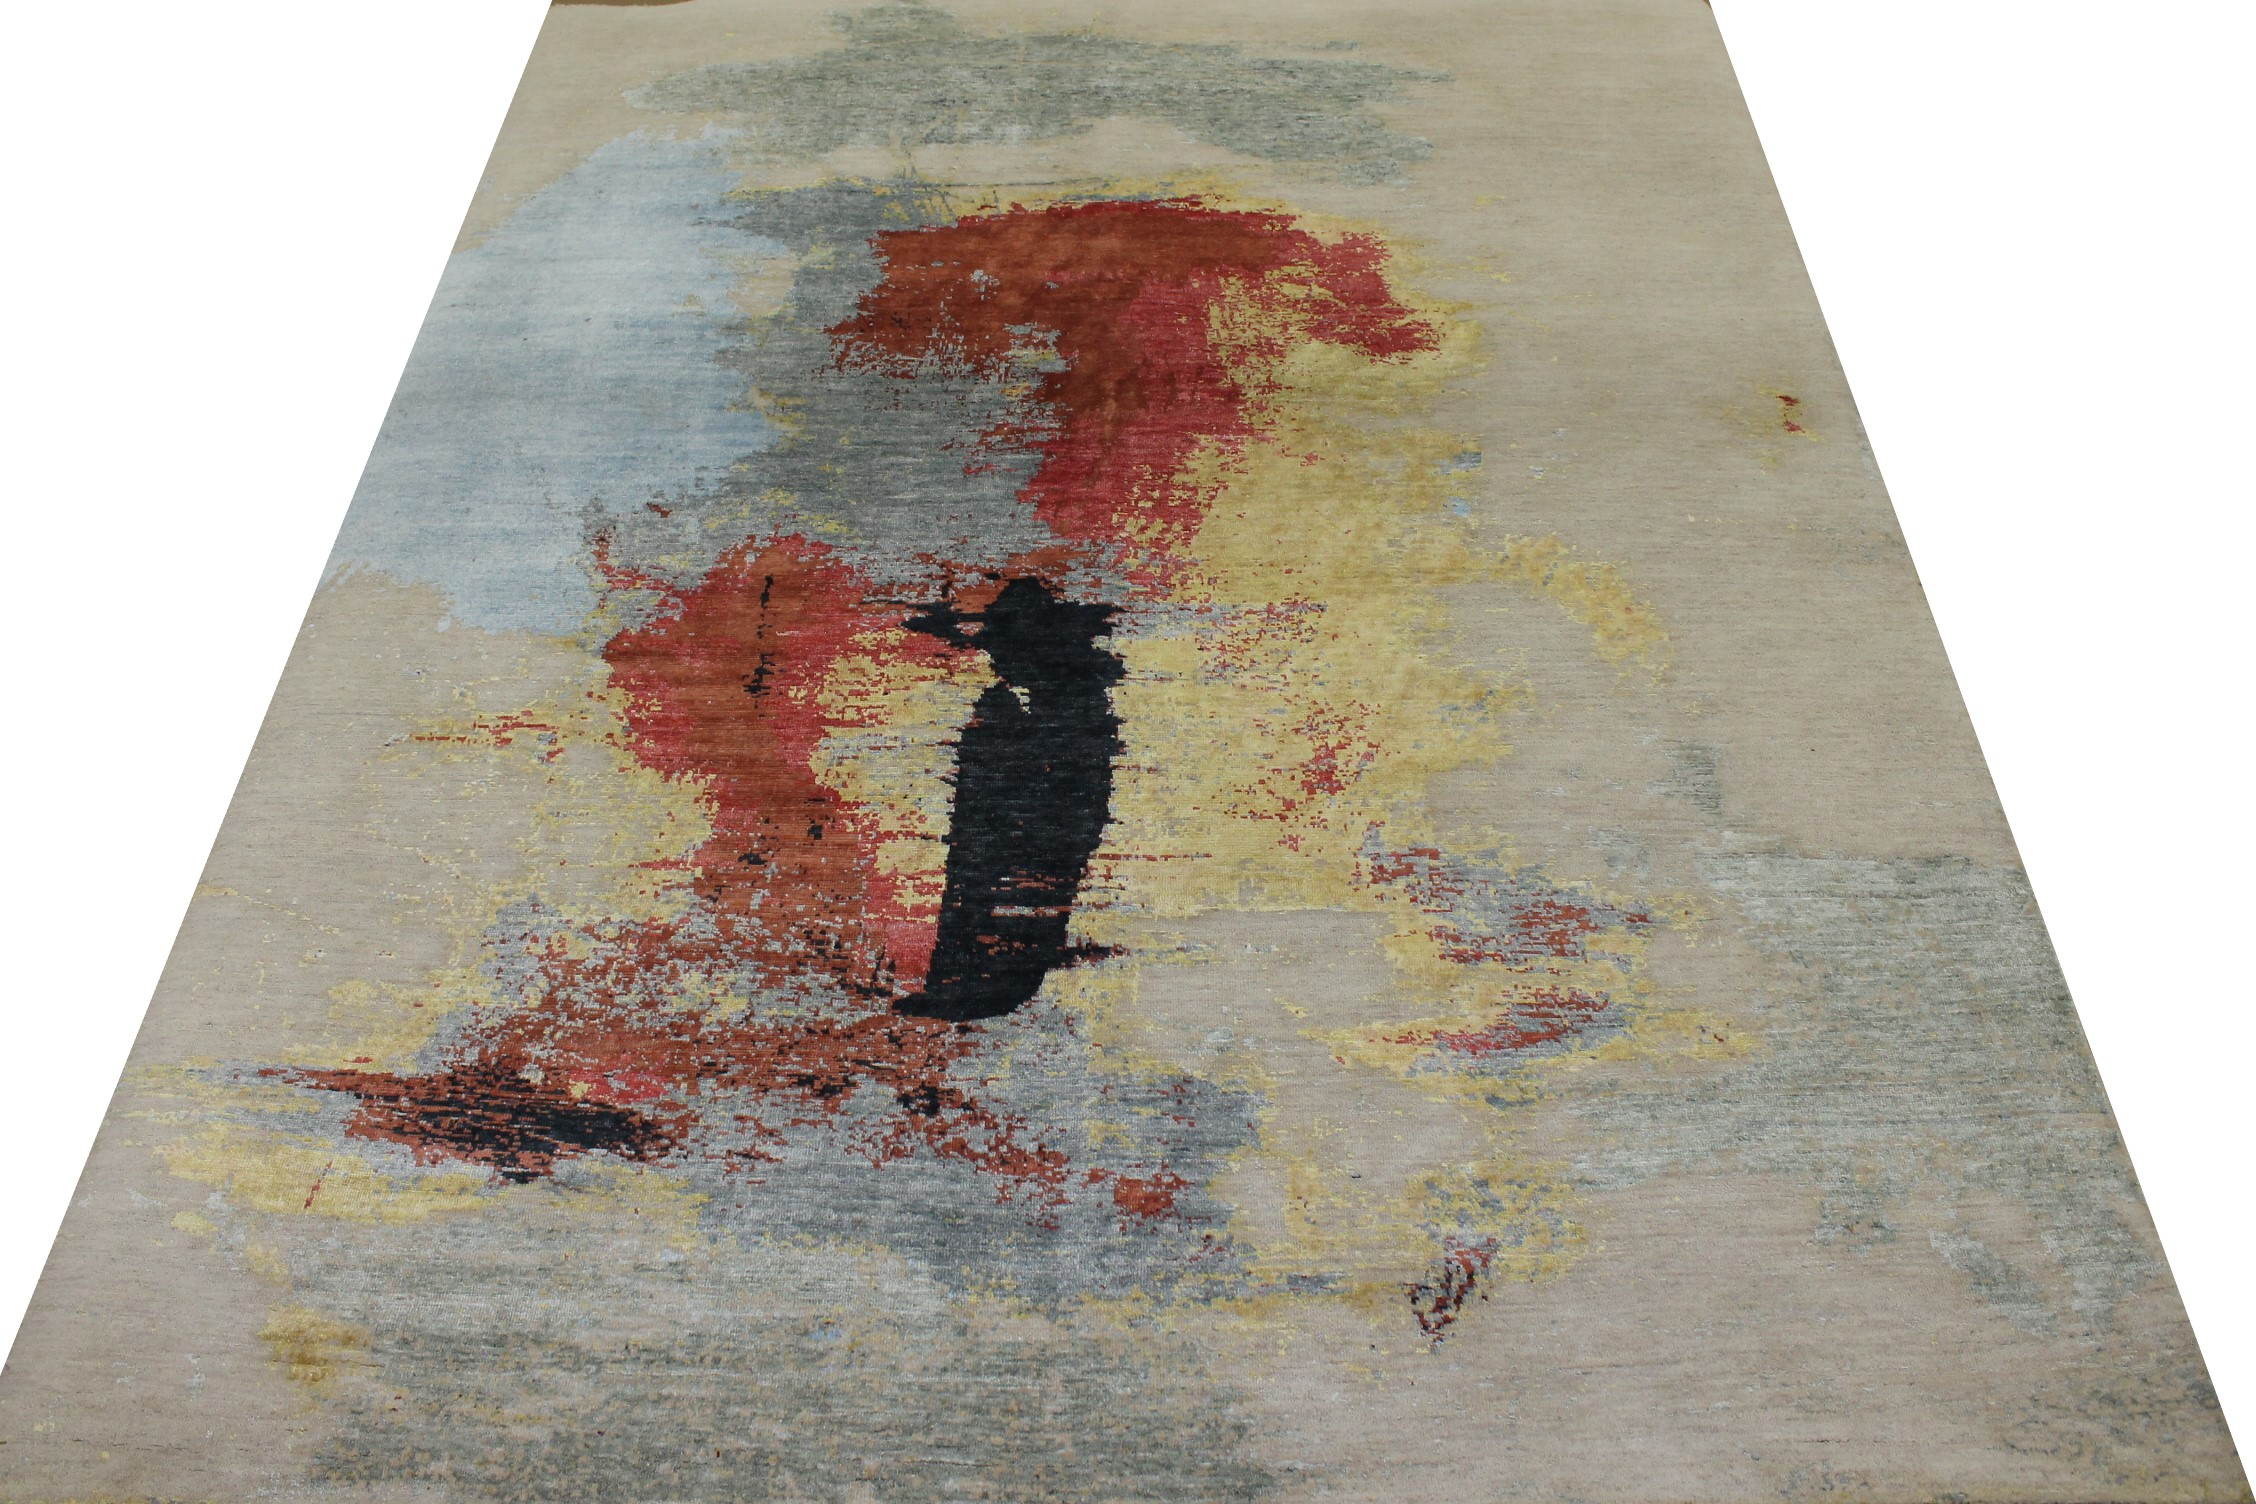 8x10 Modern Hand Knotted Wool & Viscose Area Rug - MR023392